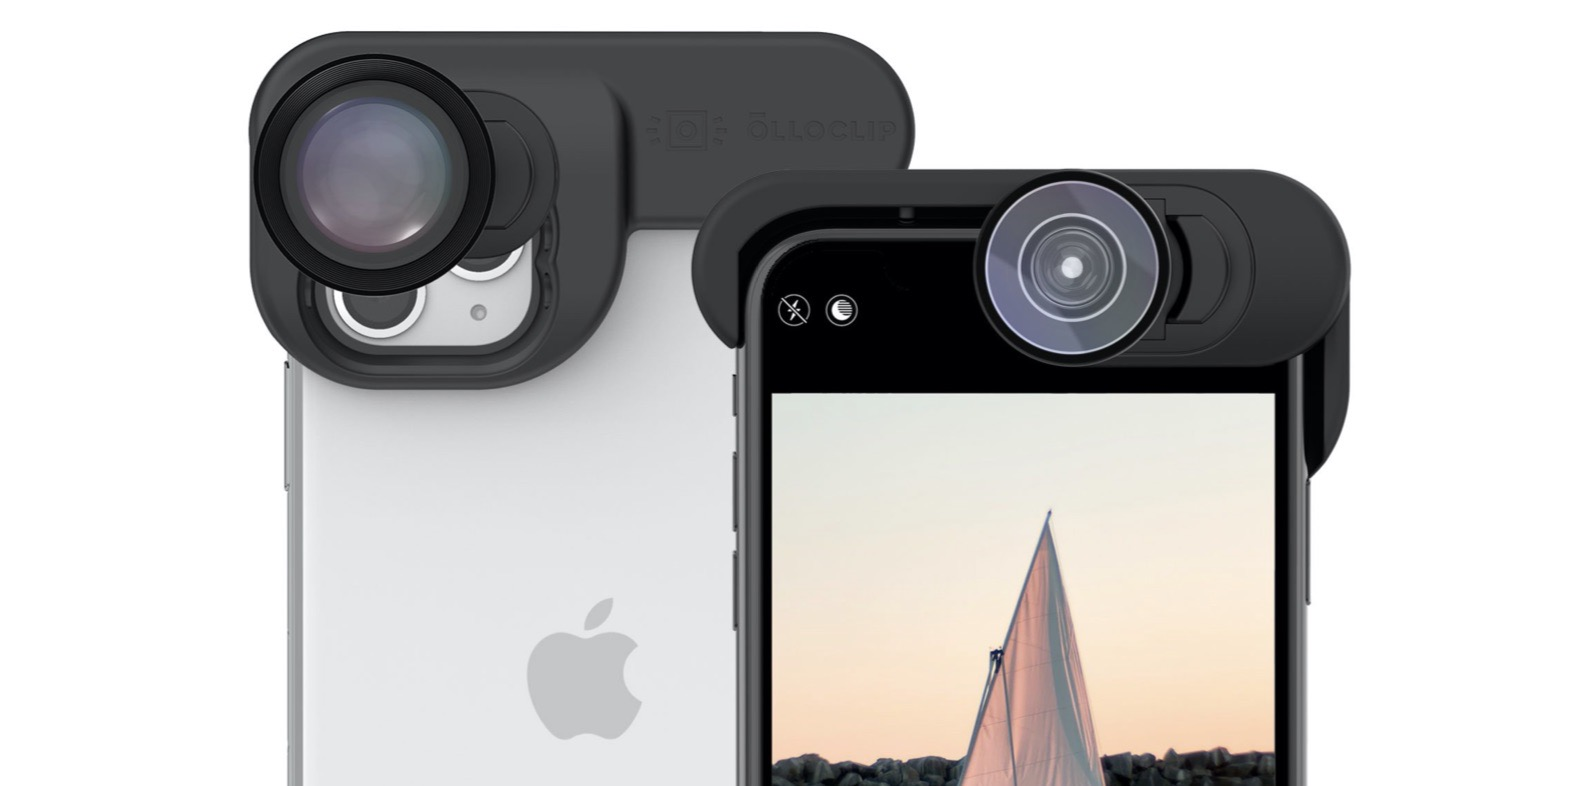 Olloclip aims to enhance iPhone 11 photography with new external lens systems